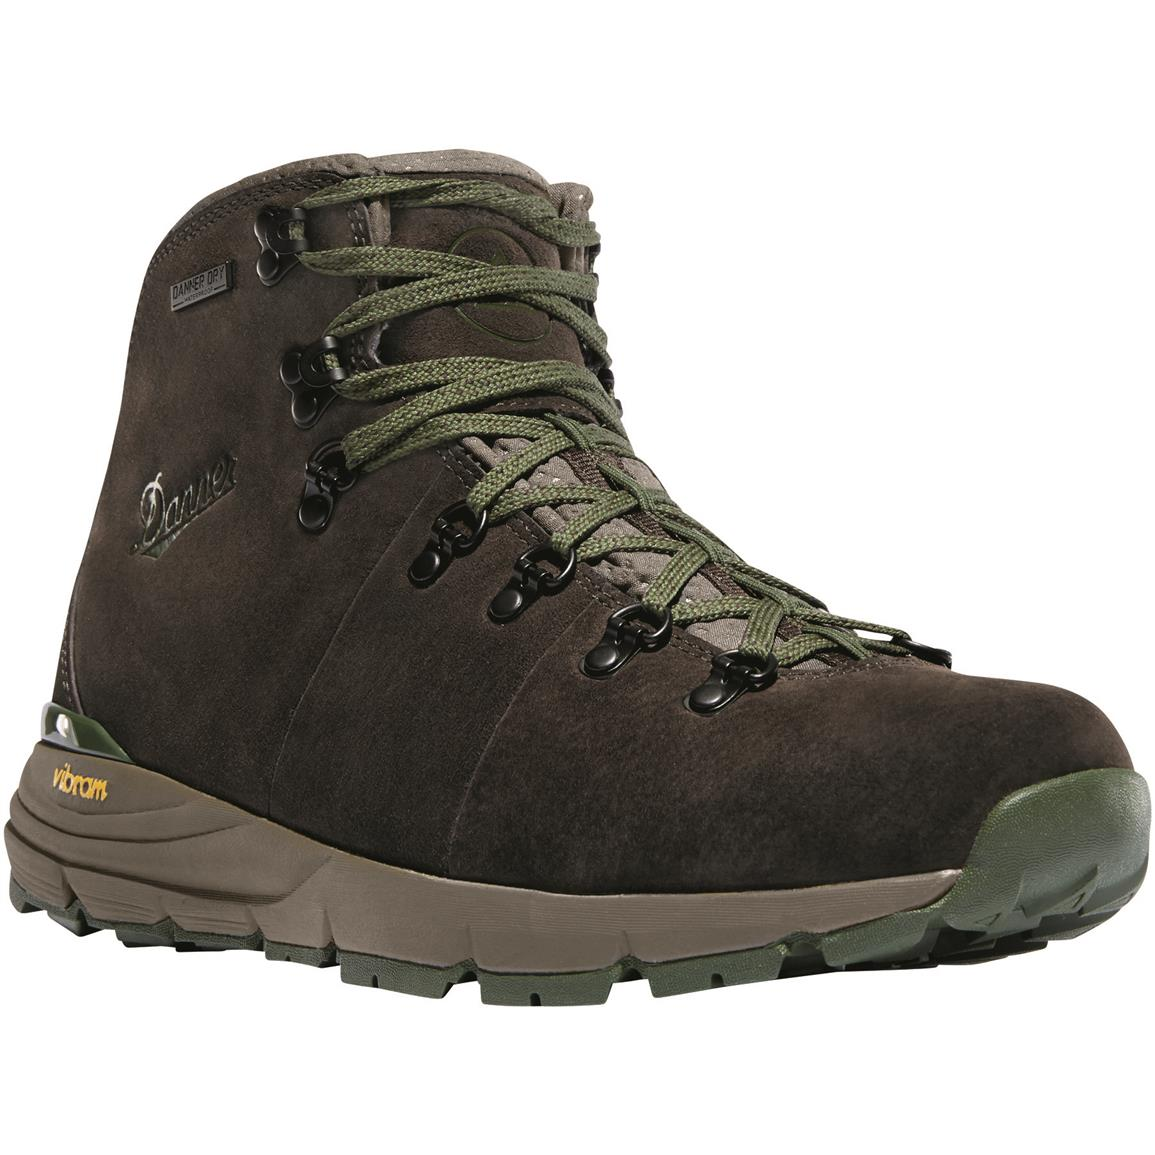 "Danner Mountain 600 4.5"" Men's Suede Waterproof Hiking Boots, Dark Brown/Green"